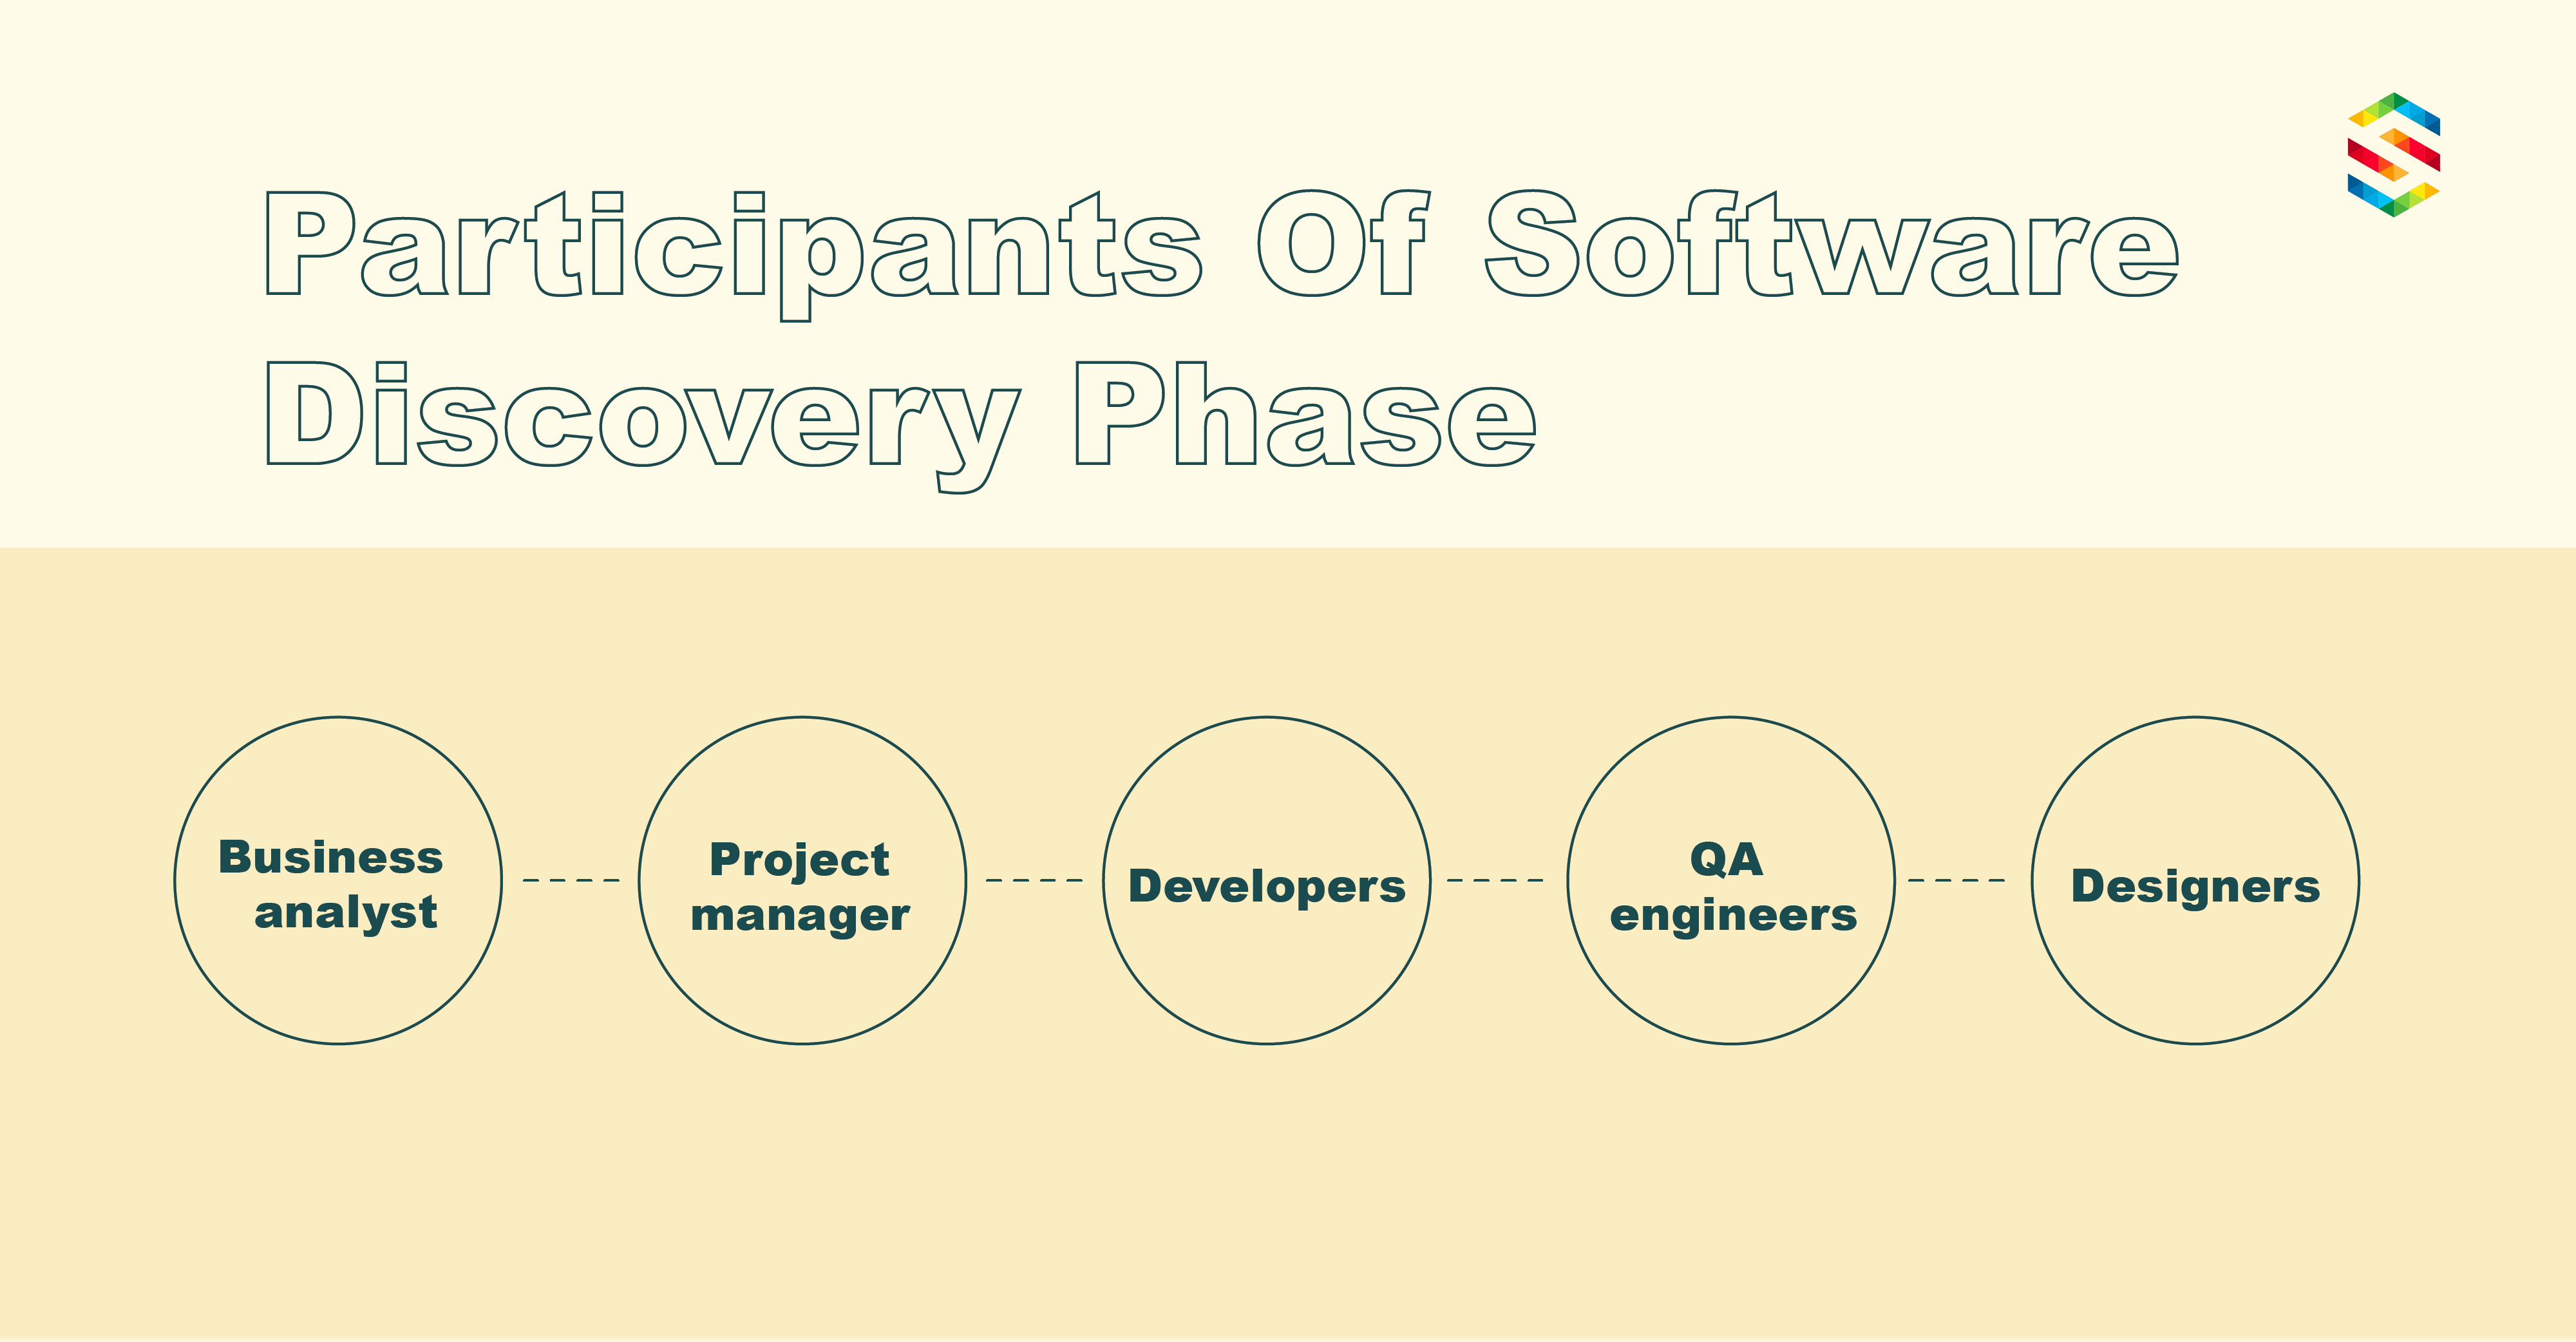 Discovery phase participants